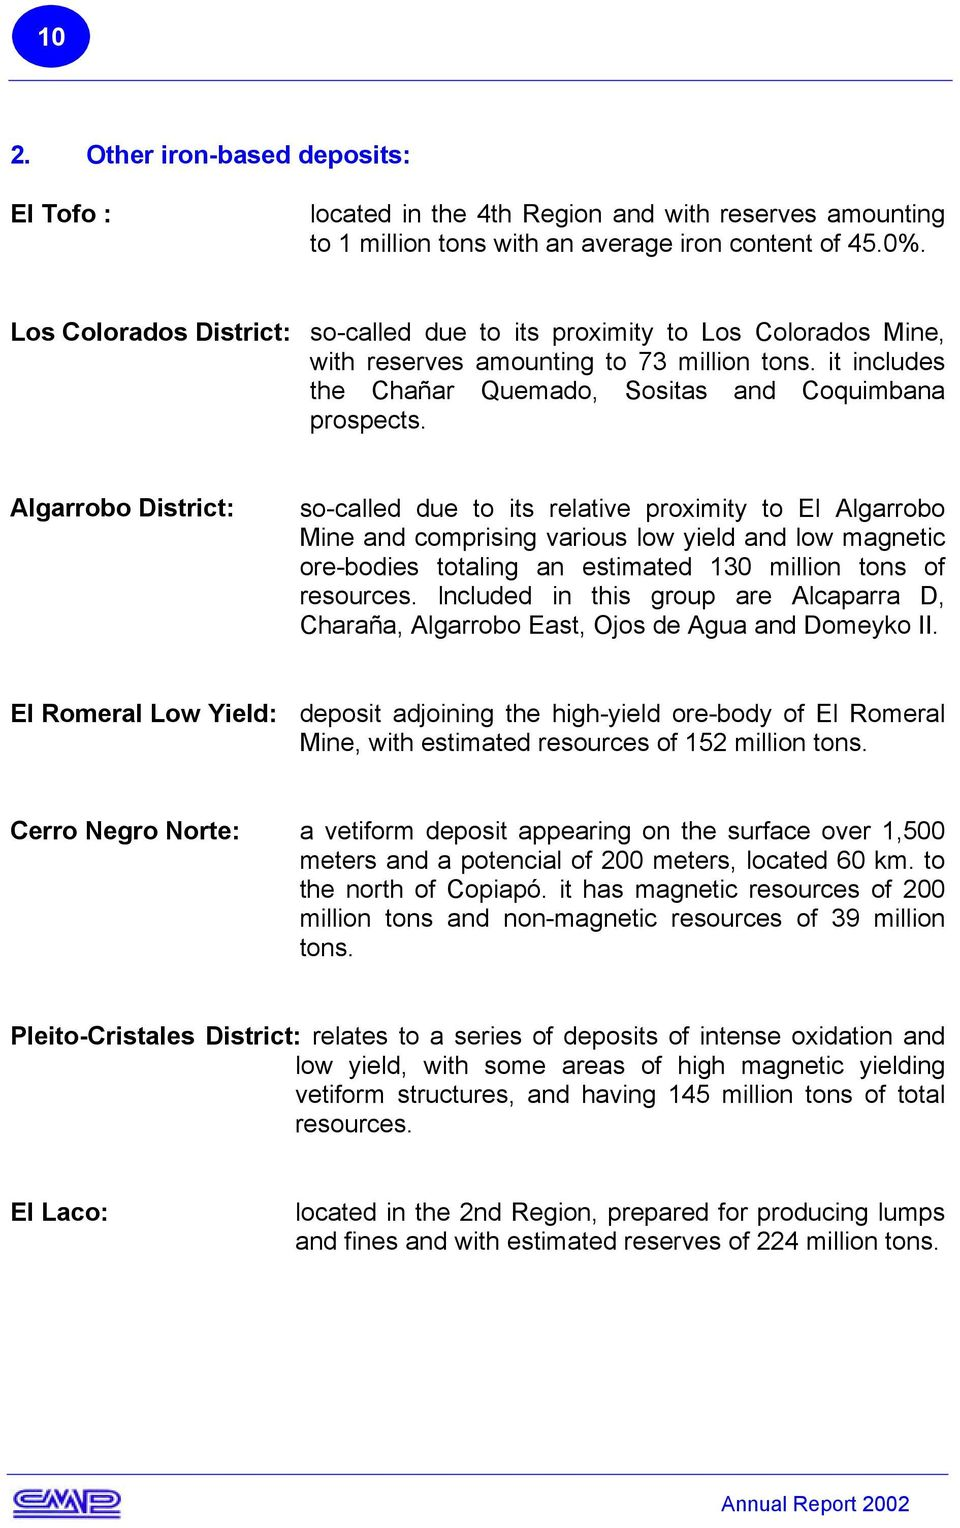 Algarrobo District: so-called due to its relative proximity to El Algarrobo Mine and comprising various low yield and low magnetic ore-bodies totaling an estimated 130 million tons of resources.